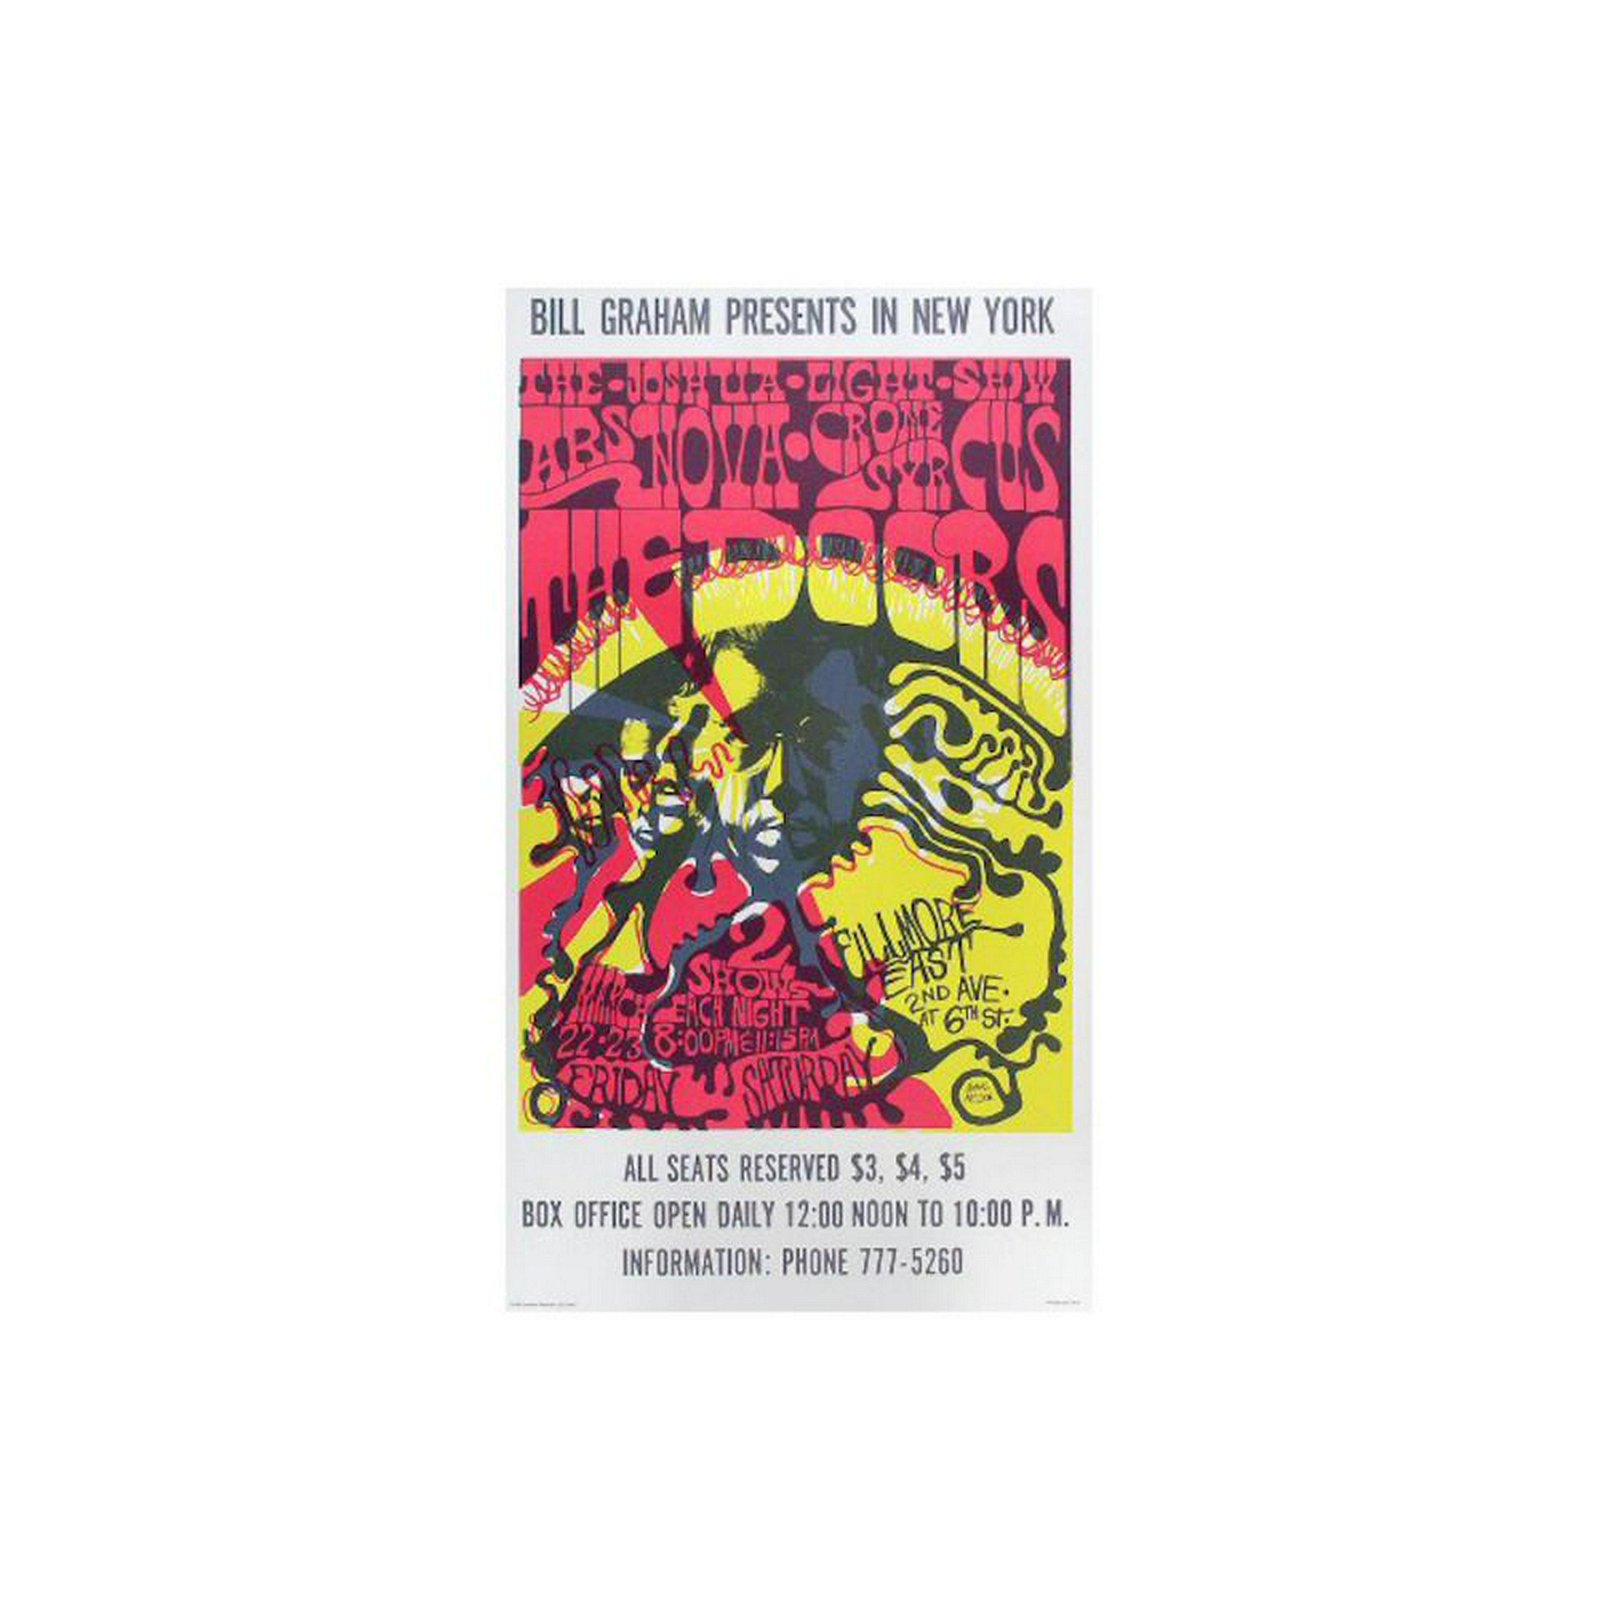 The Doors - 1968 Fillmore East Concert Poster